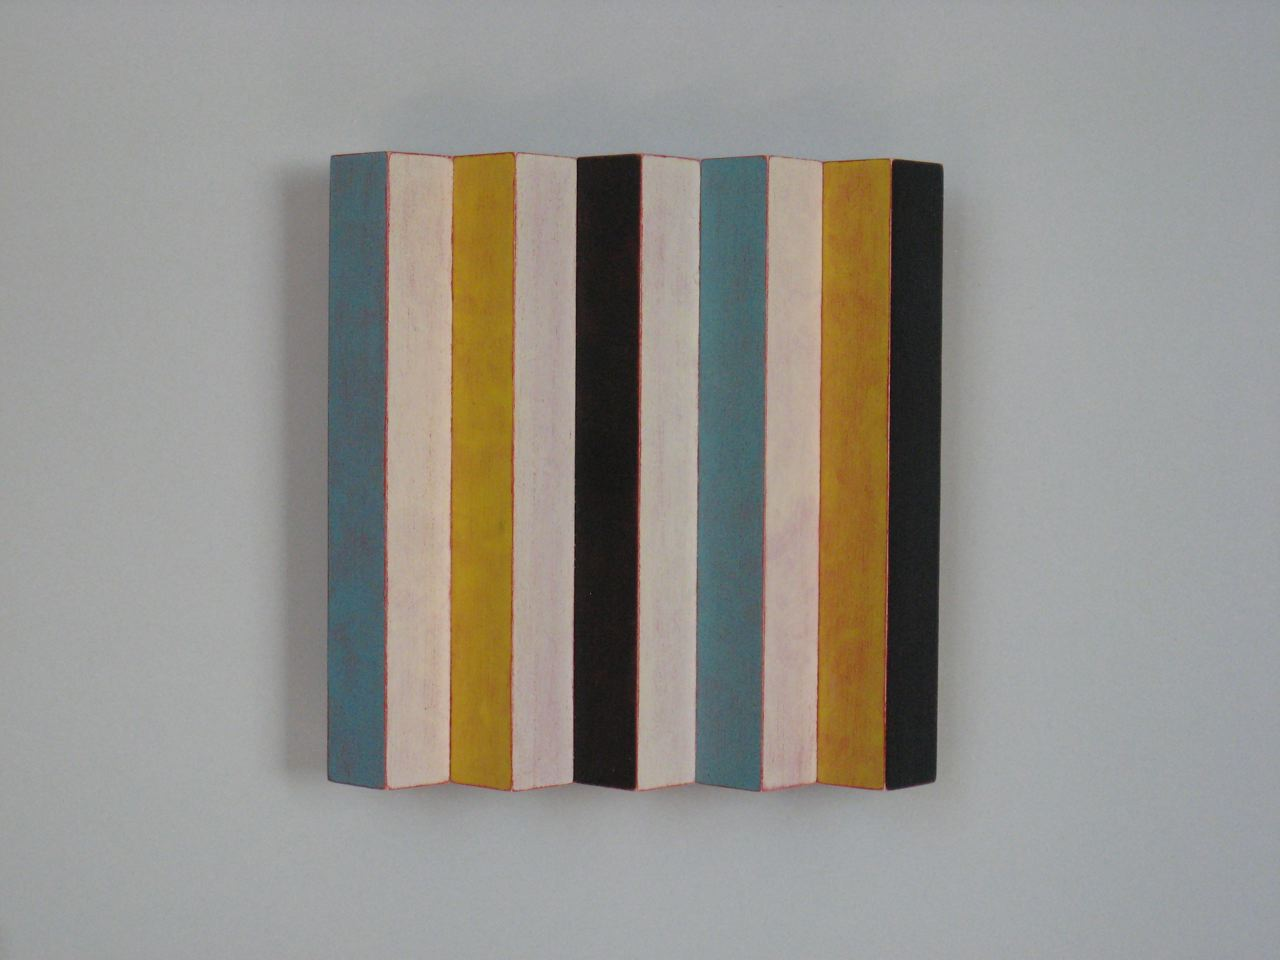 Ozawa, Emi Stripes on a Square maple, acrylic paint 5 1:4x 5 1:4 x 1 2012 $500.jpg